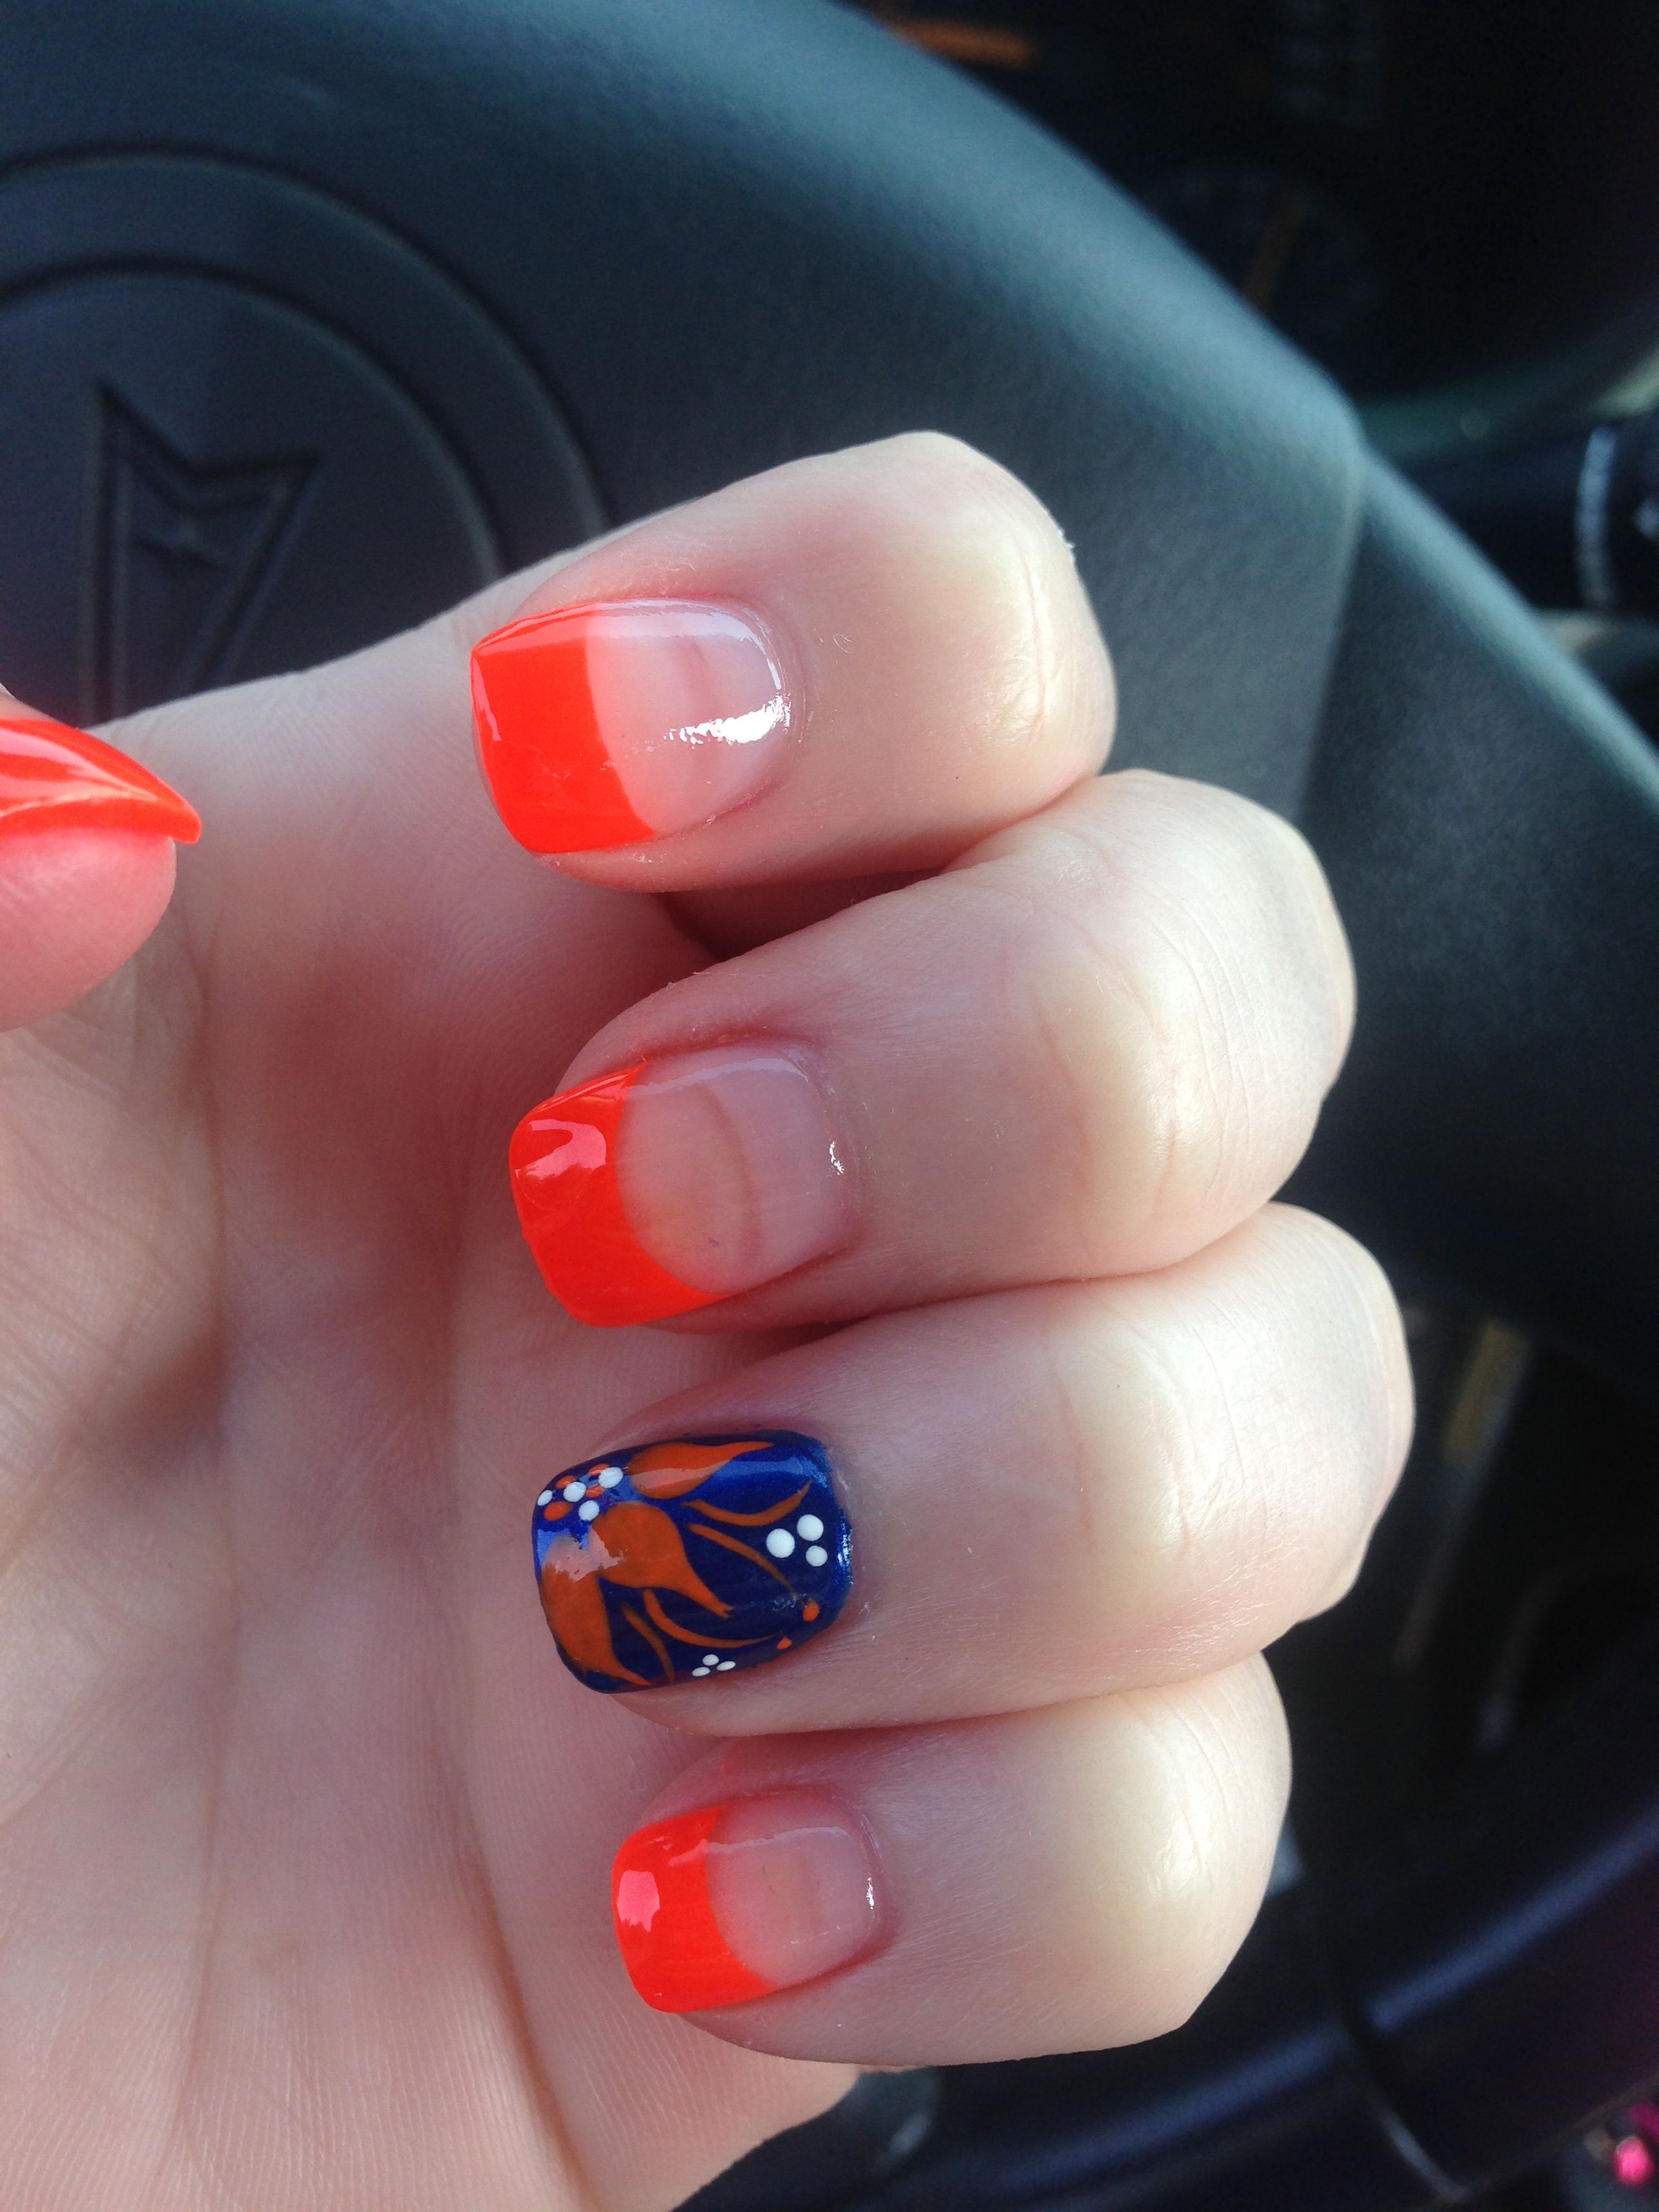 Gator nails but without the orange tips. | Beauty is more than skin ...